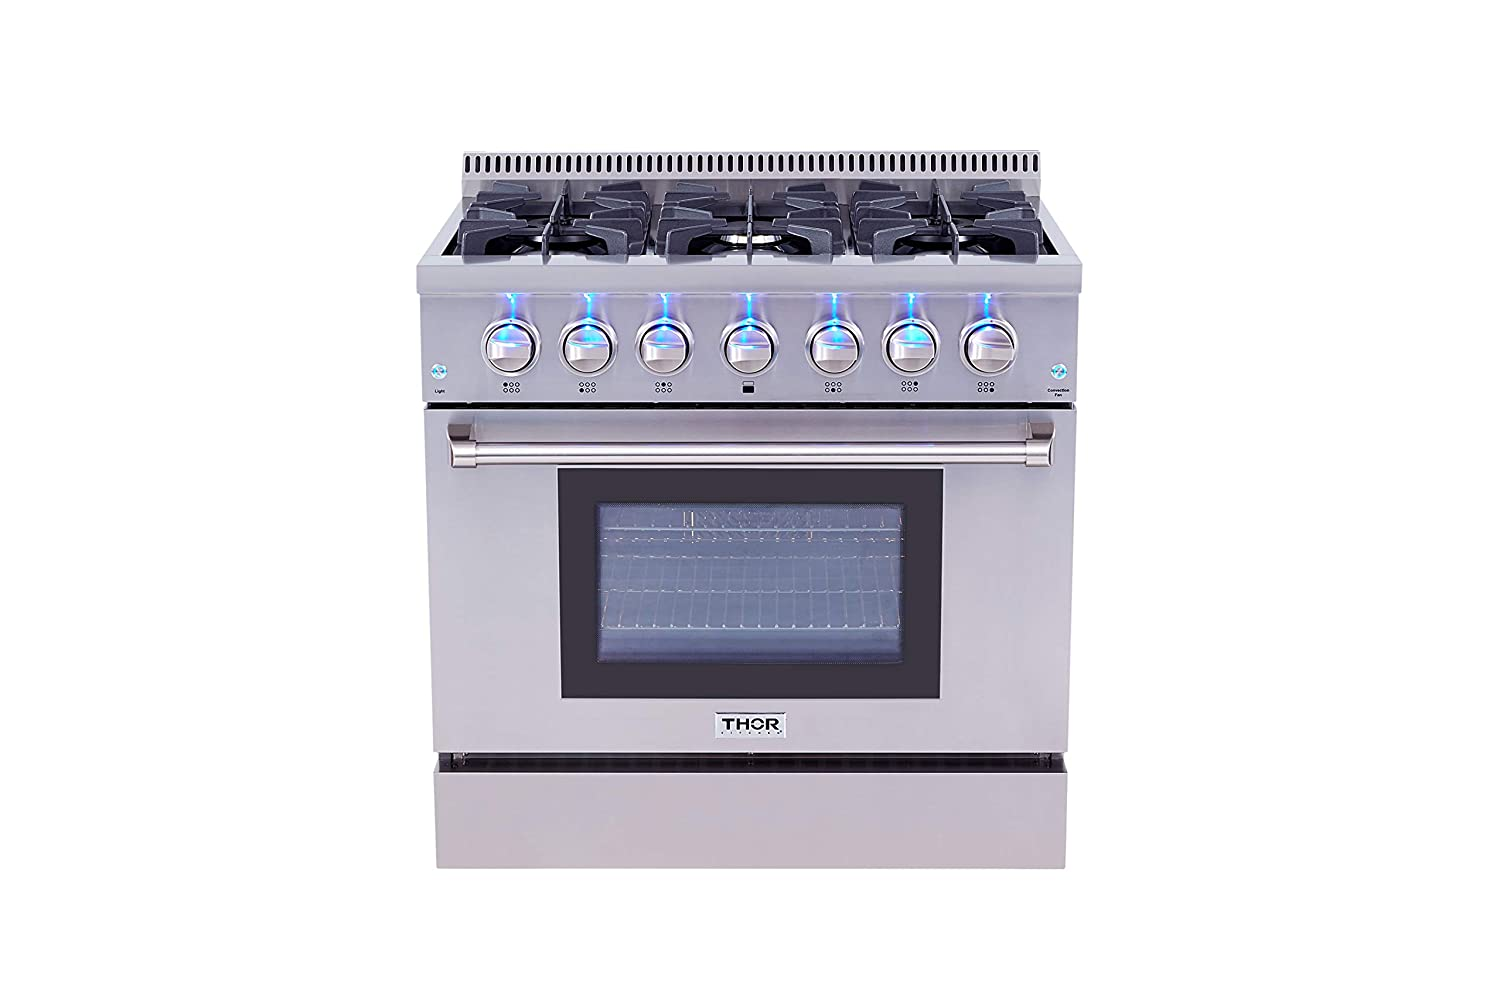 "Thorkitchen HRD3606U 36"" Freestanding Professional Style Dual Fuel Range with 5.2 cu. ft. Oven, 6 Burners, Convection Fan, Stainless Steel"